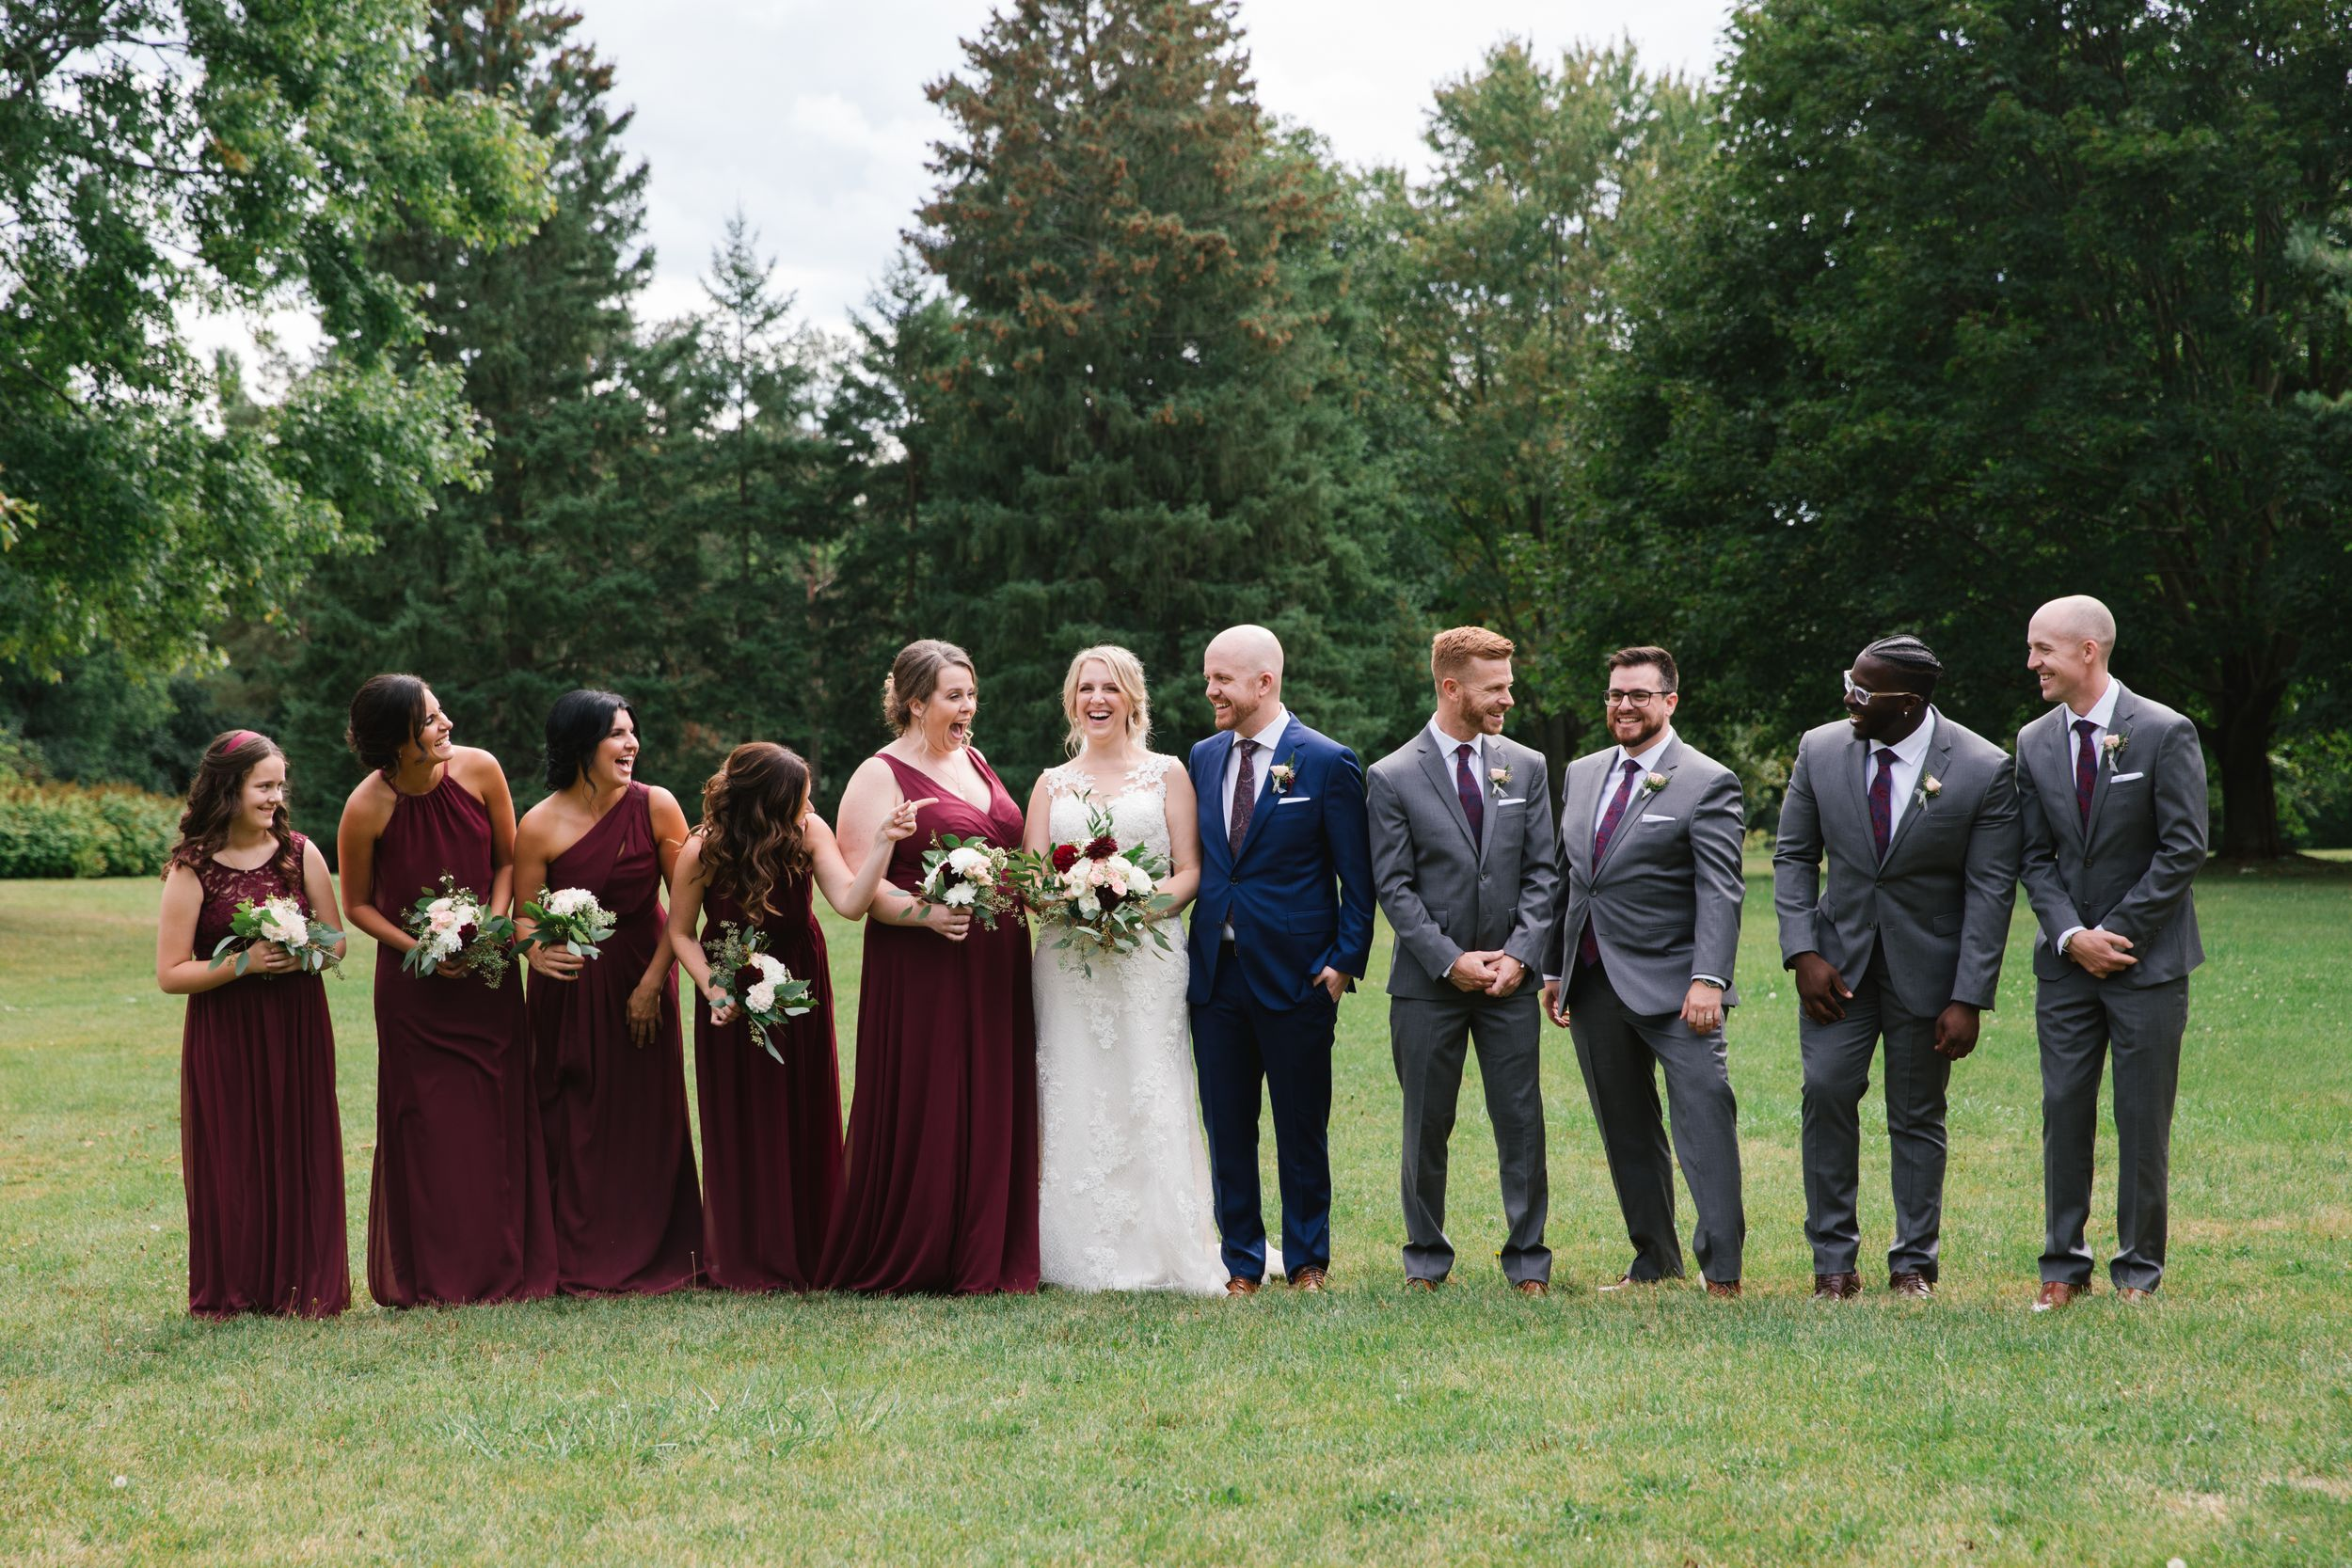 bridal party looking at each other and laughing in park